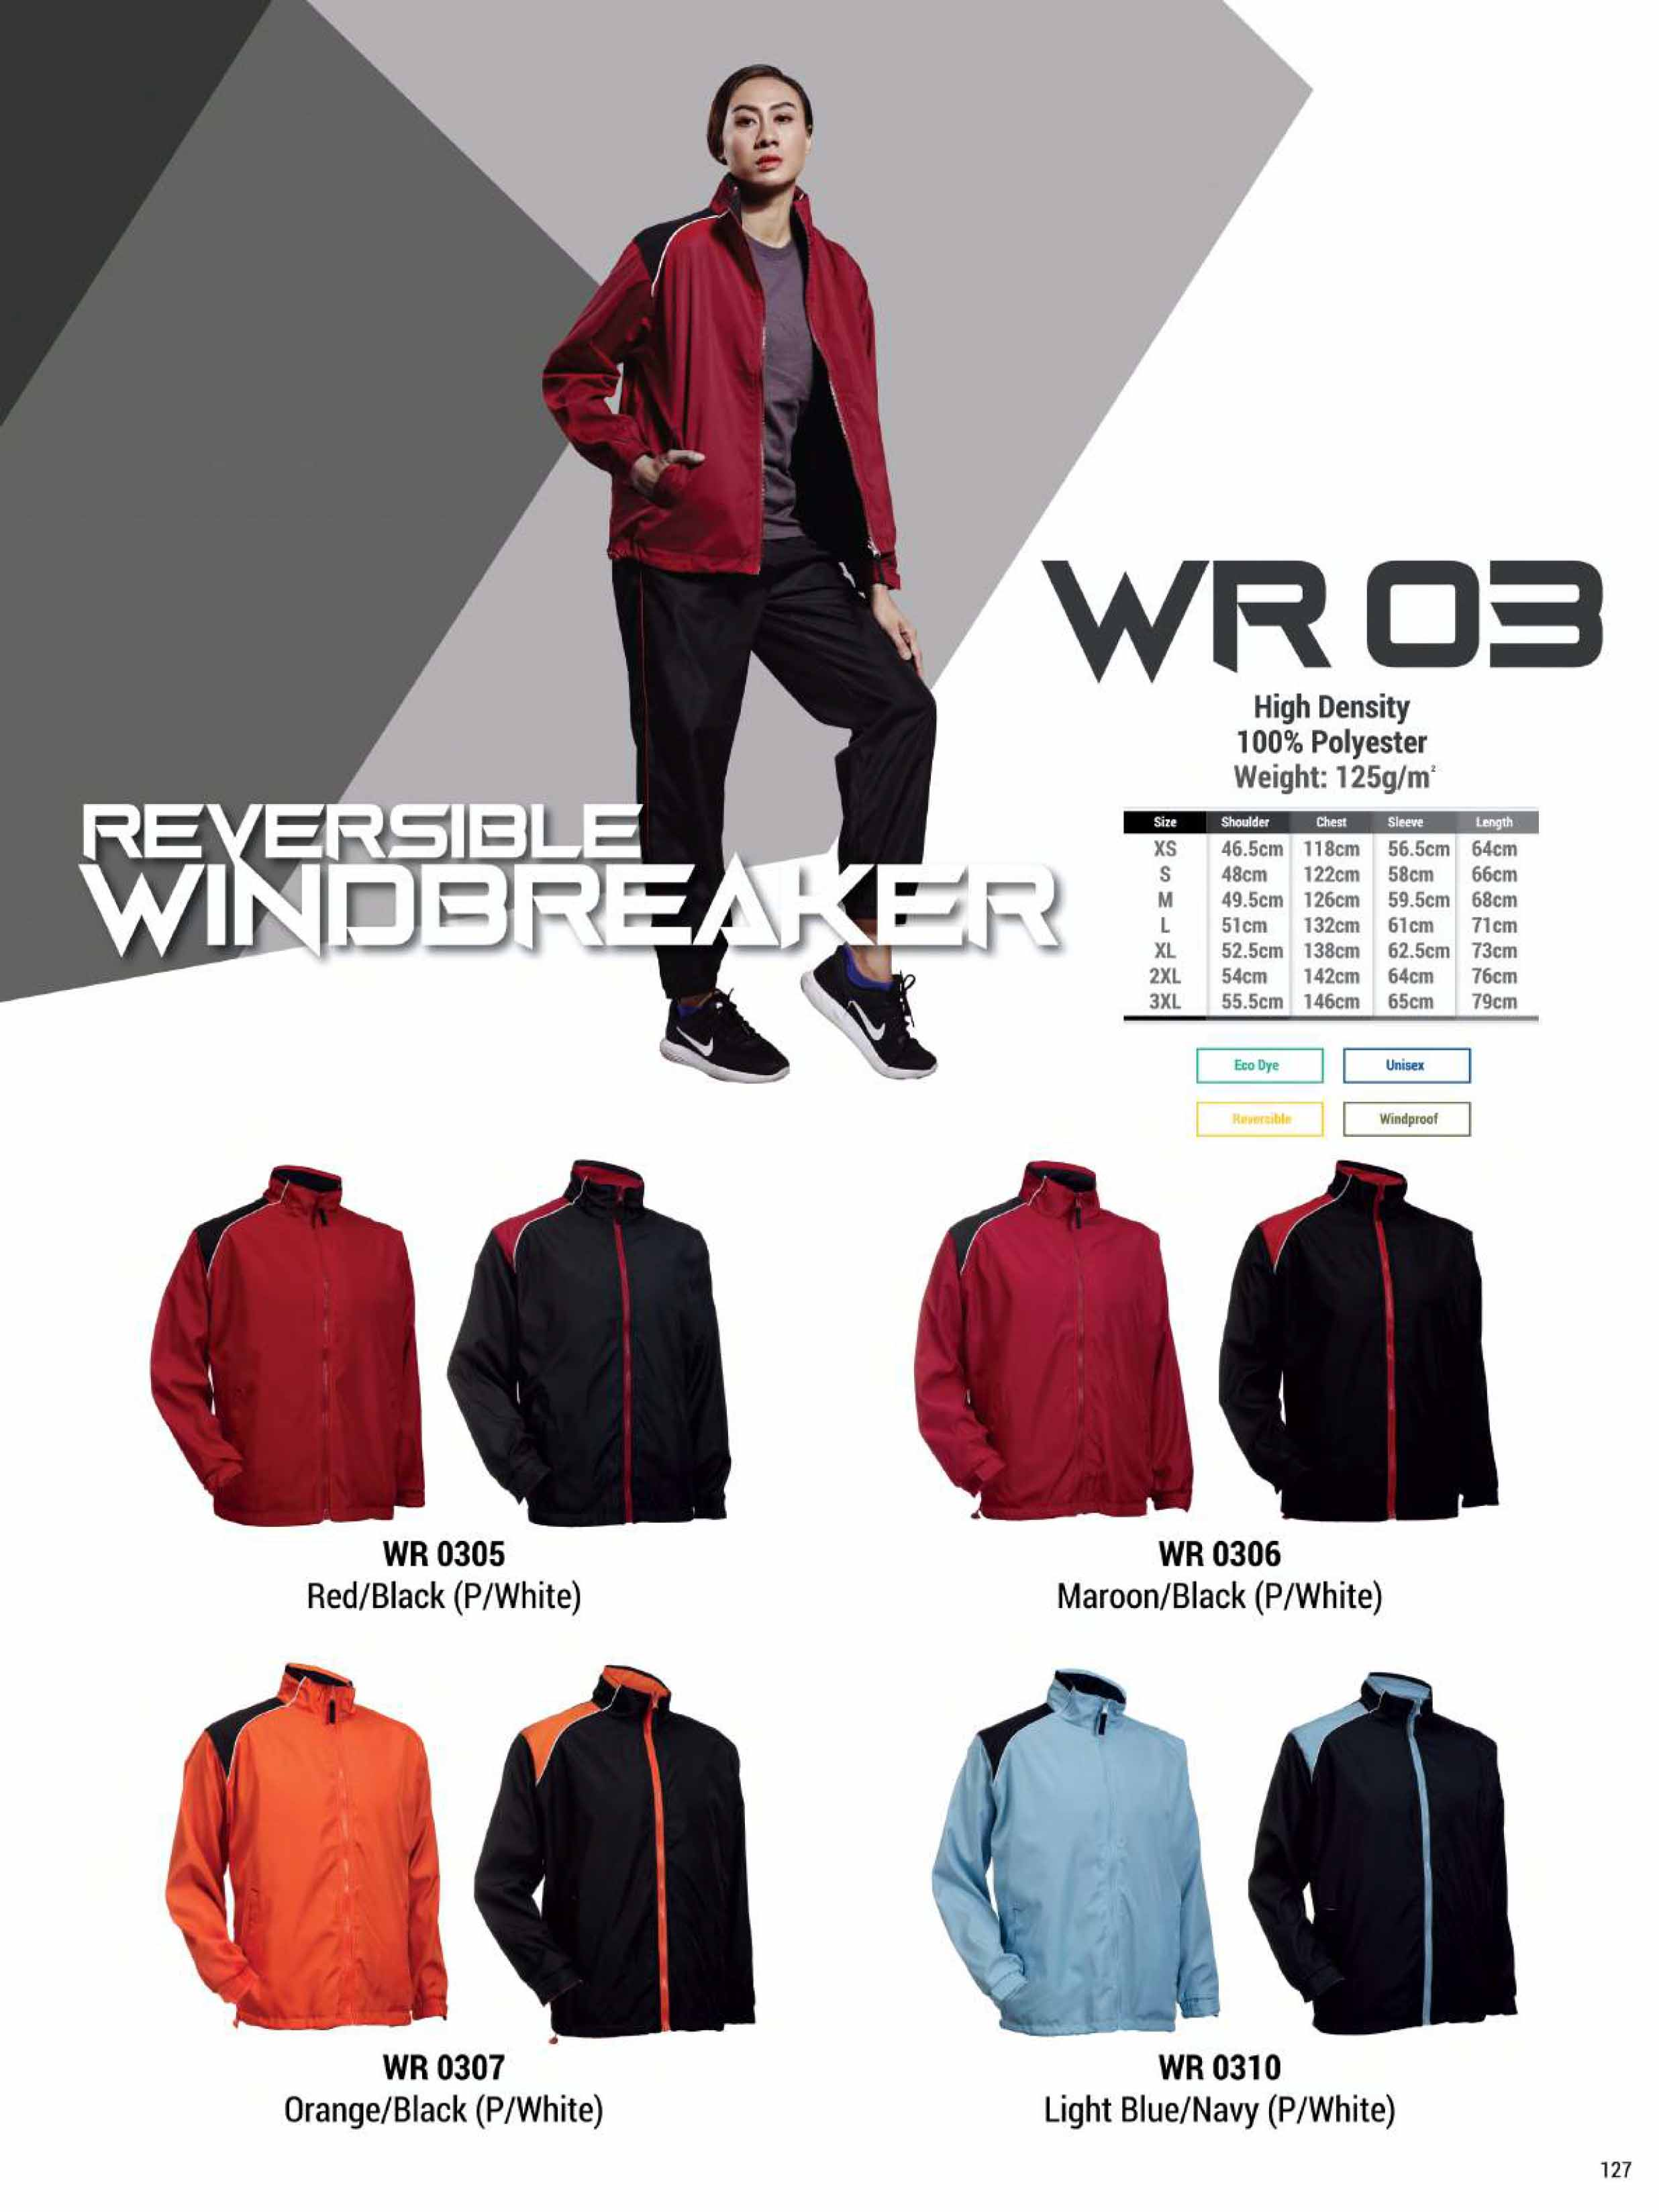 WR03 REVERSIBLE WINDBREAKER